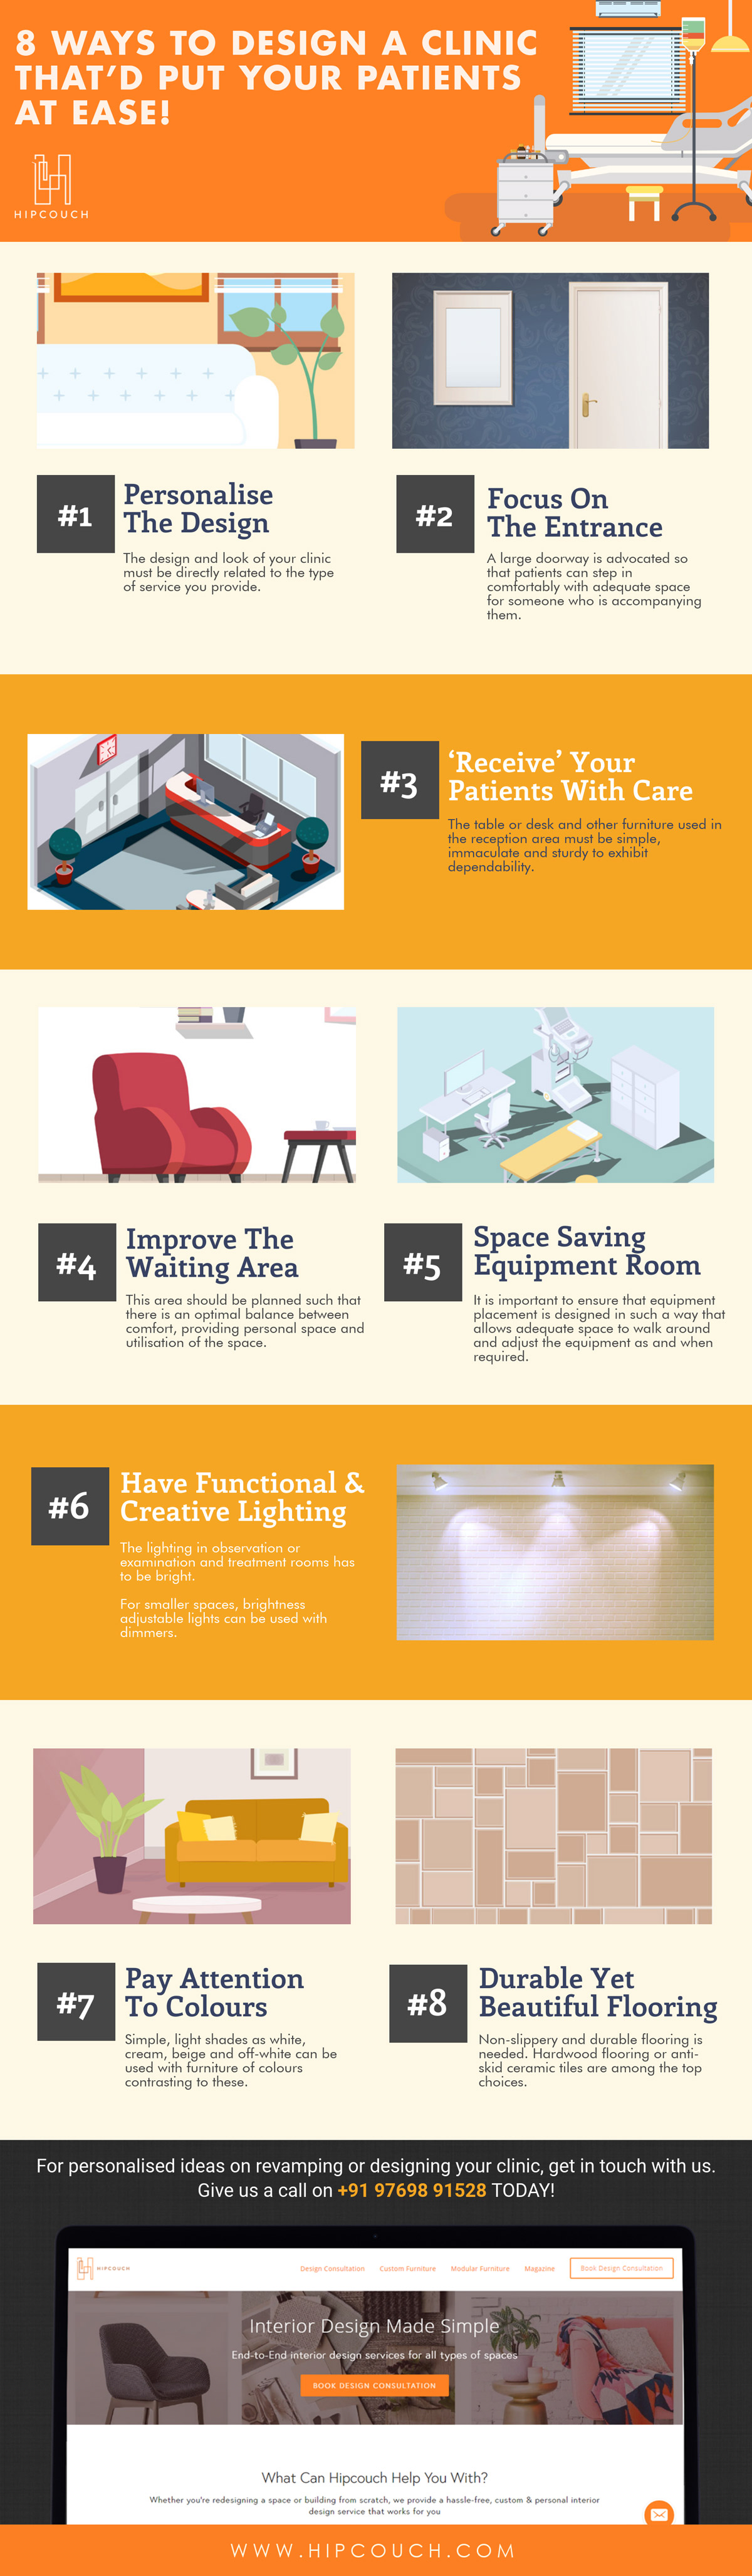 8 Ways To Design A Clinic That'd Put Your Patients At Ease!